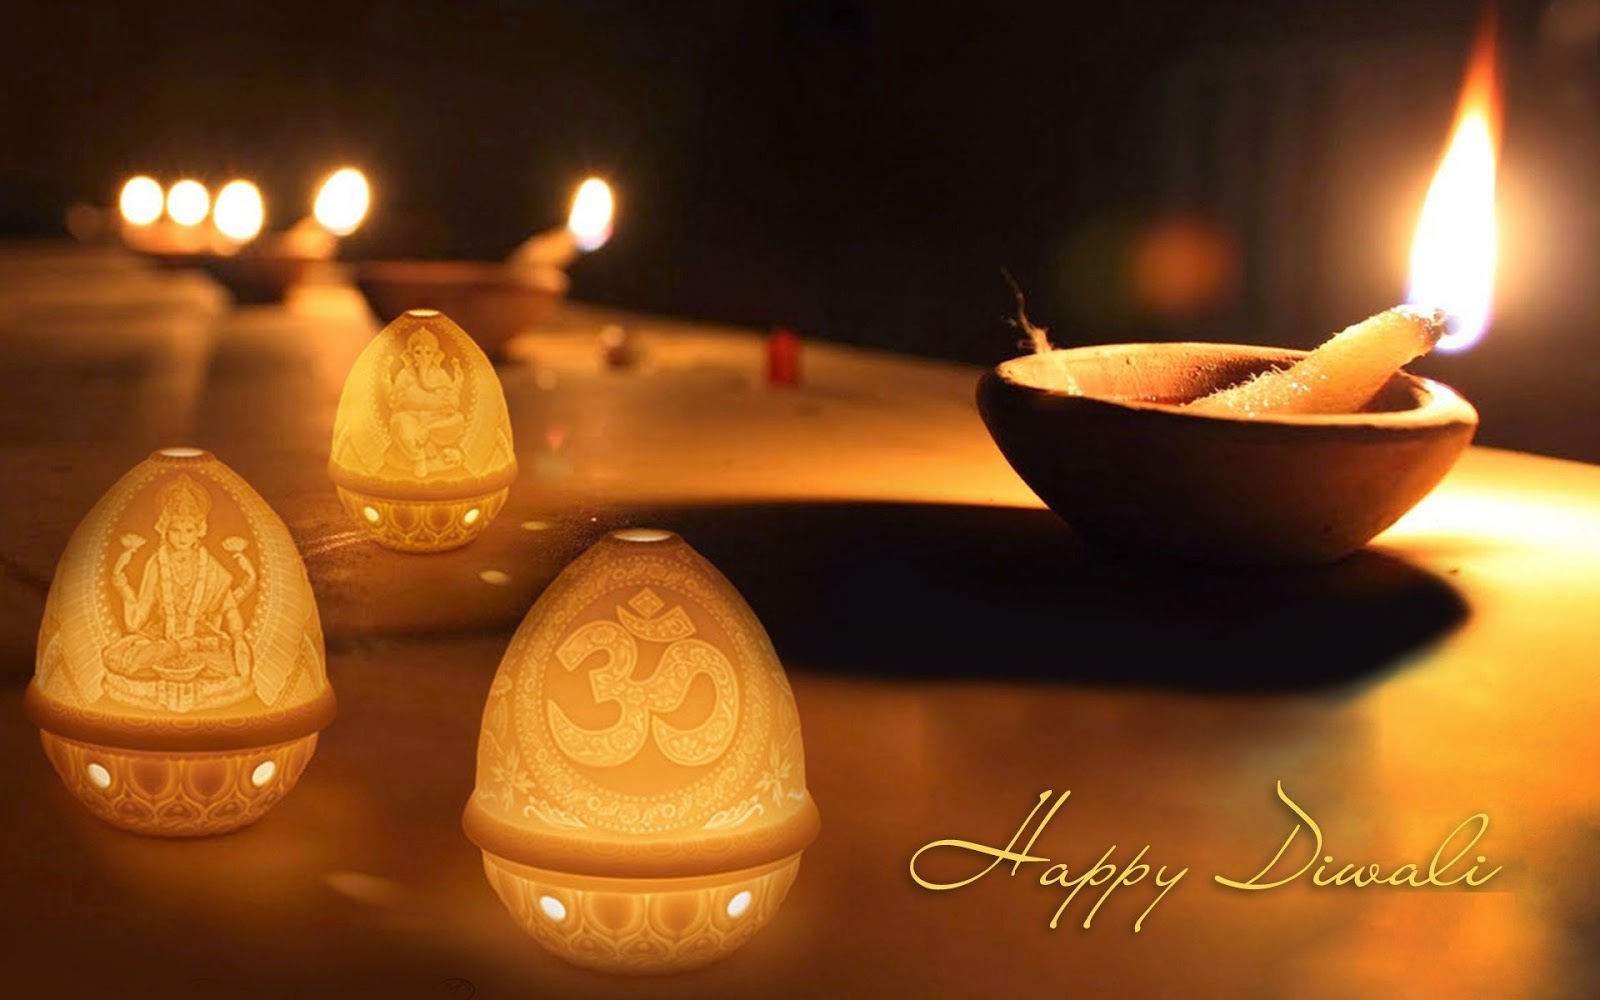 happy diwali 2014 wallpapers mega collection Free Download